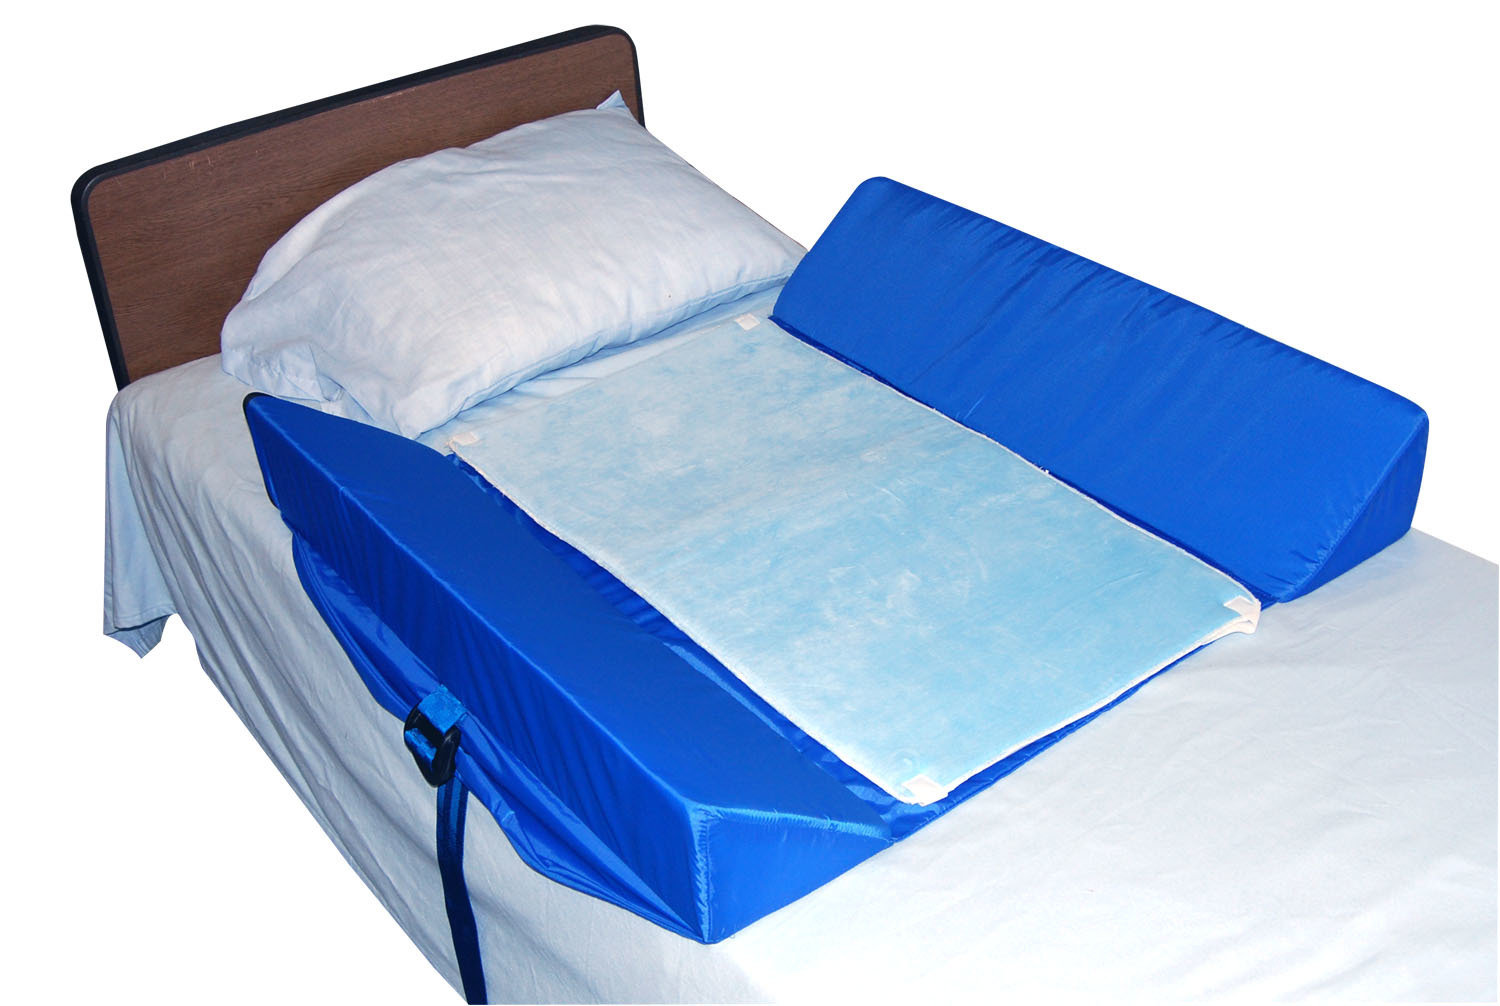 Bed Support System With Attached 30° Bolster